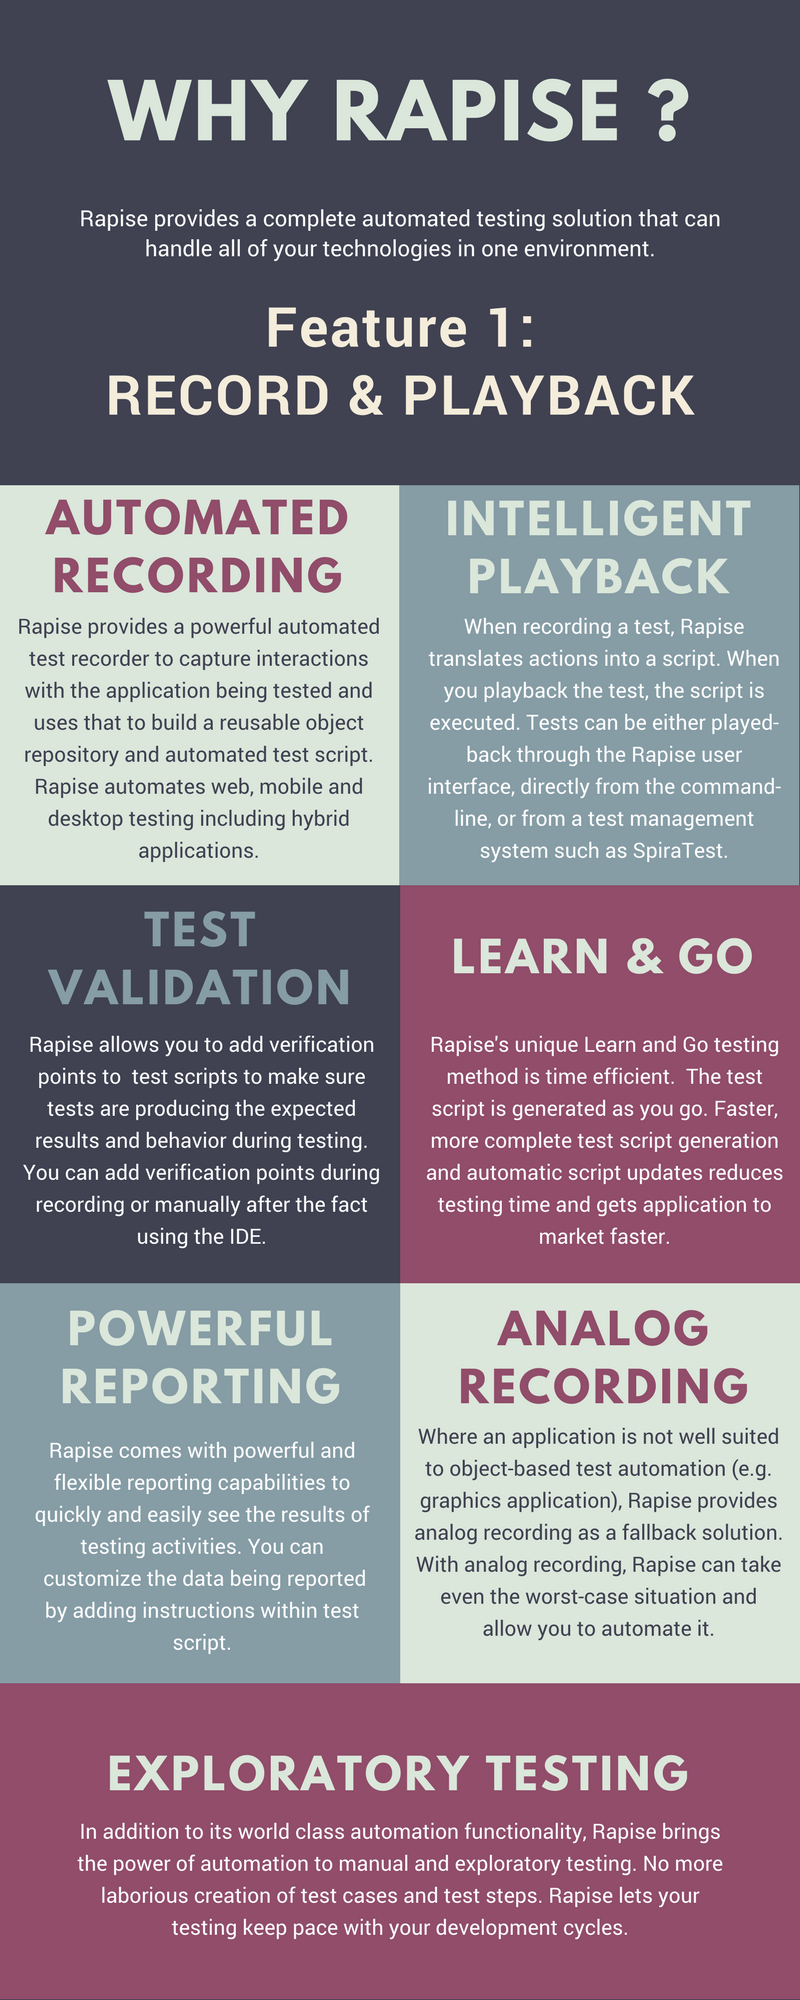 manual tester resume%0A Rapise  Software Test Automation  Rapise provides a complete automated  testing solution that can handle